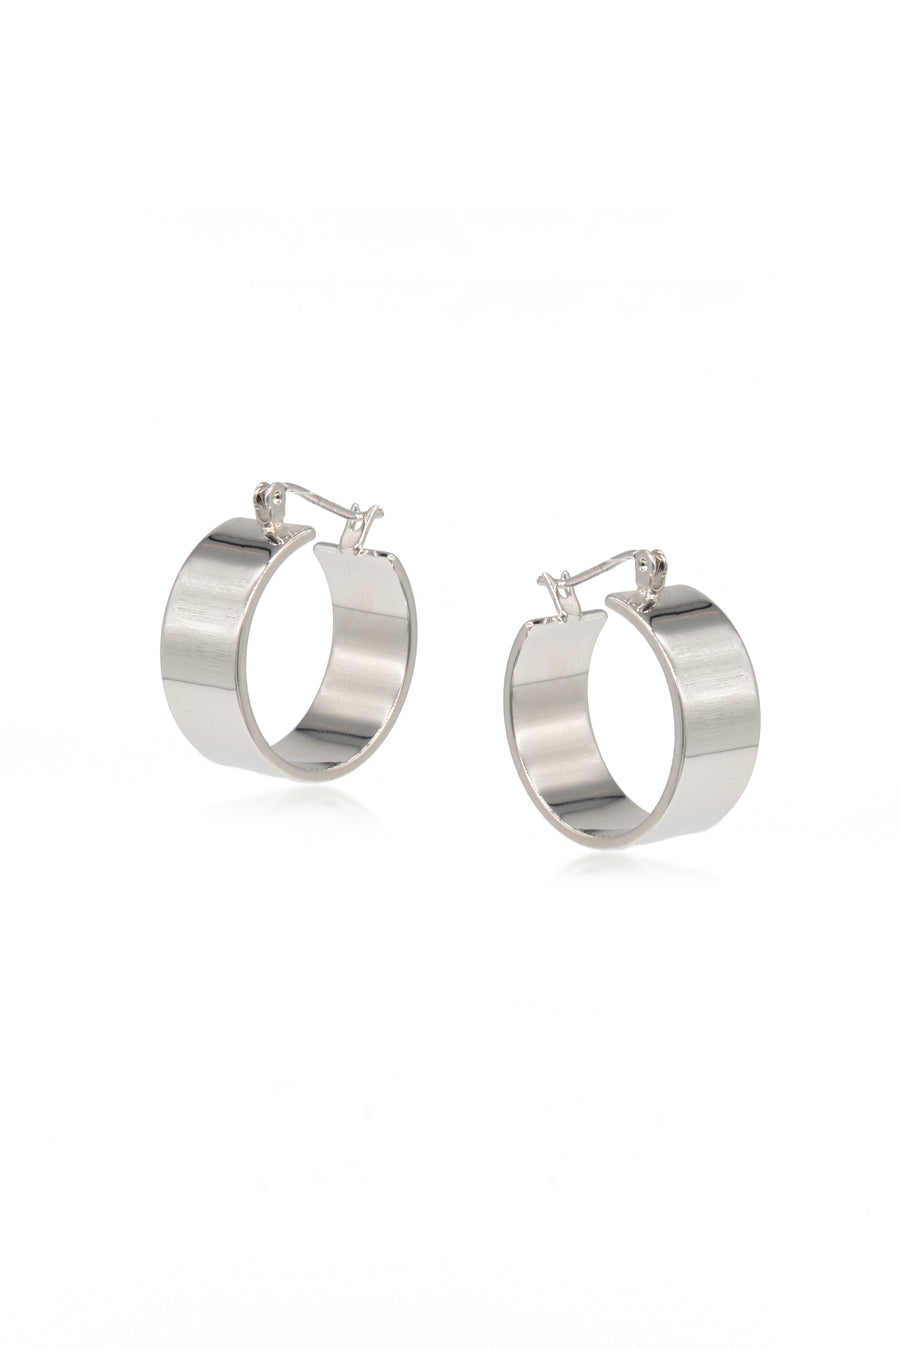 CHARLOTTA Earrings